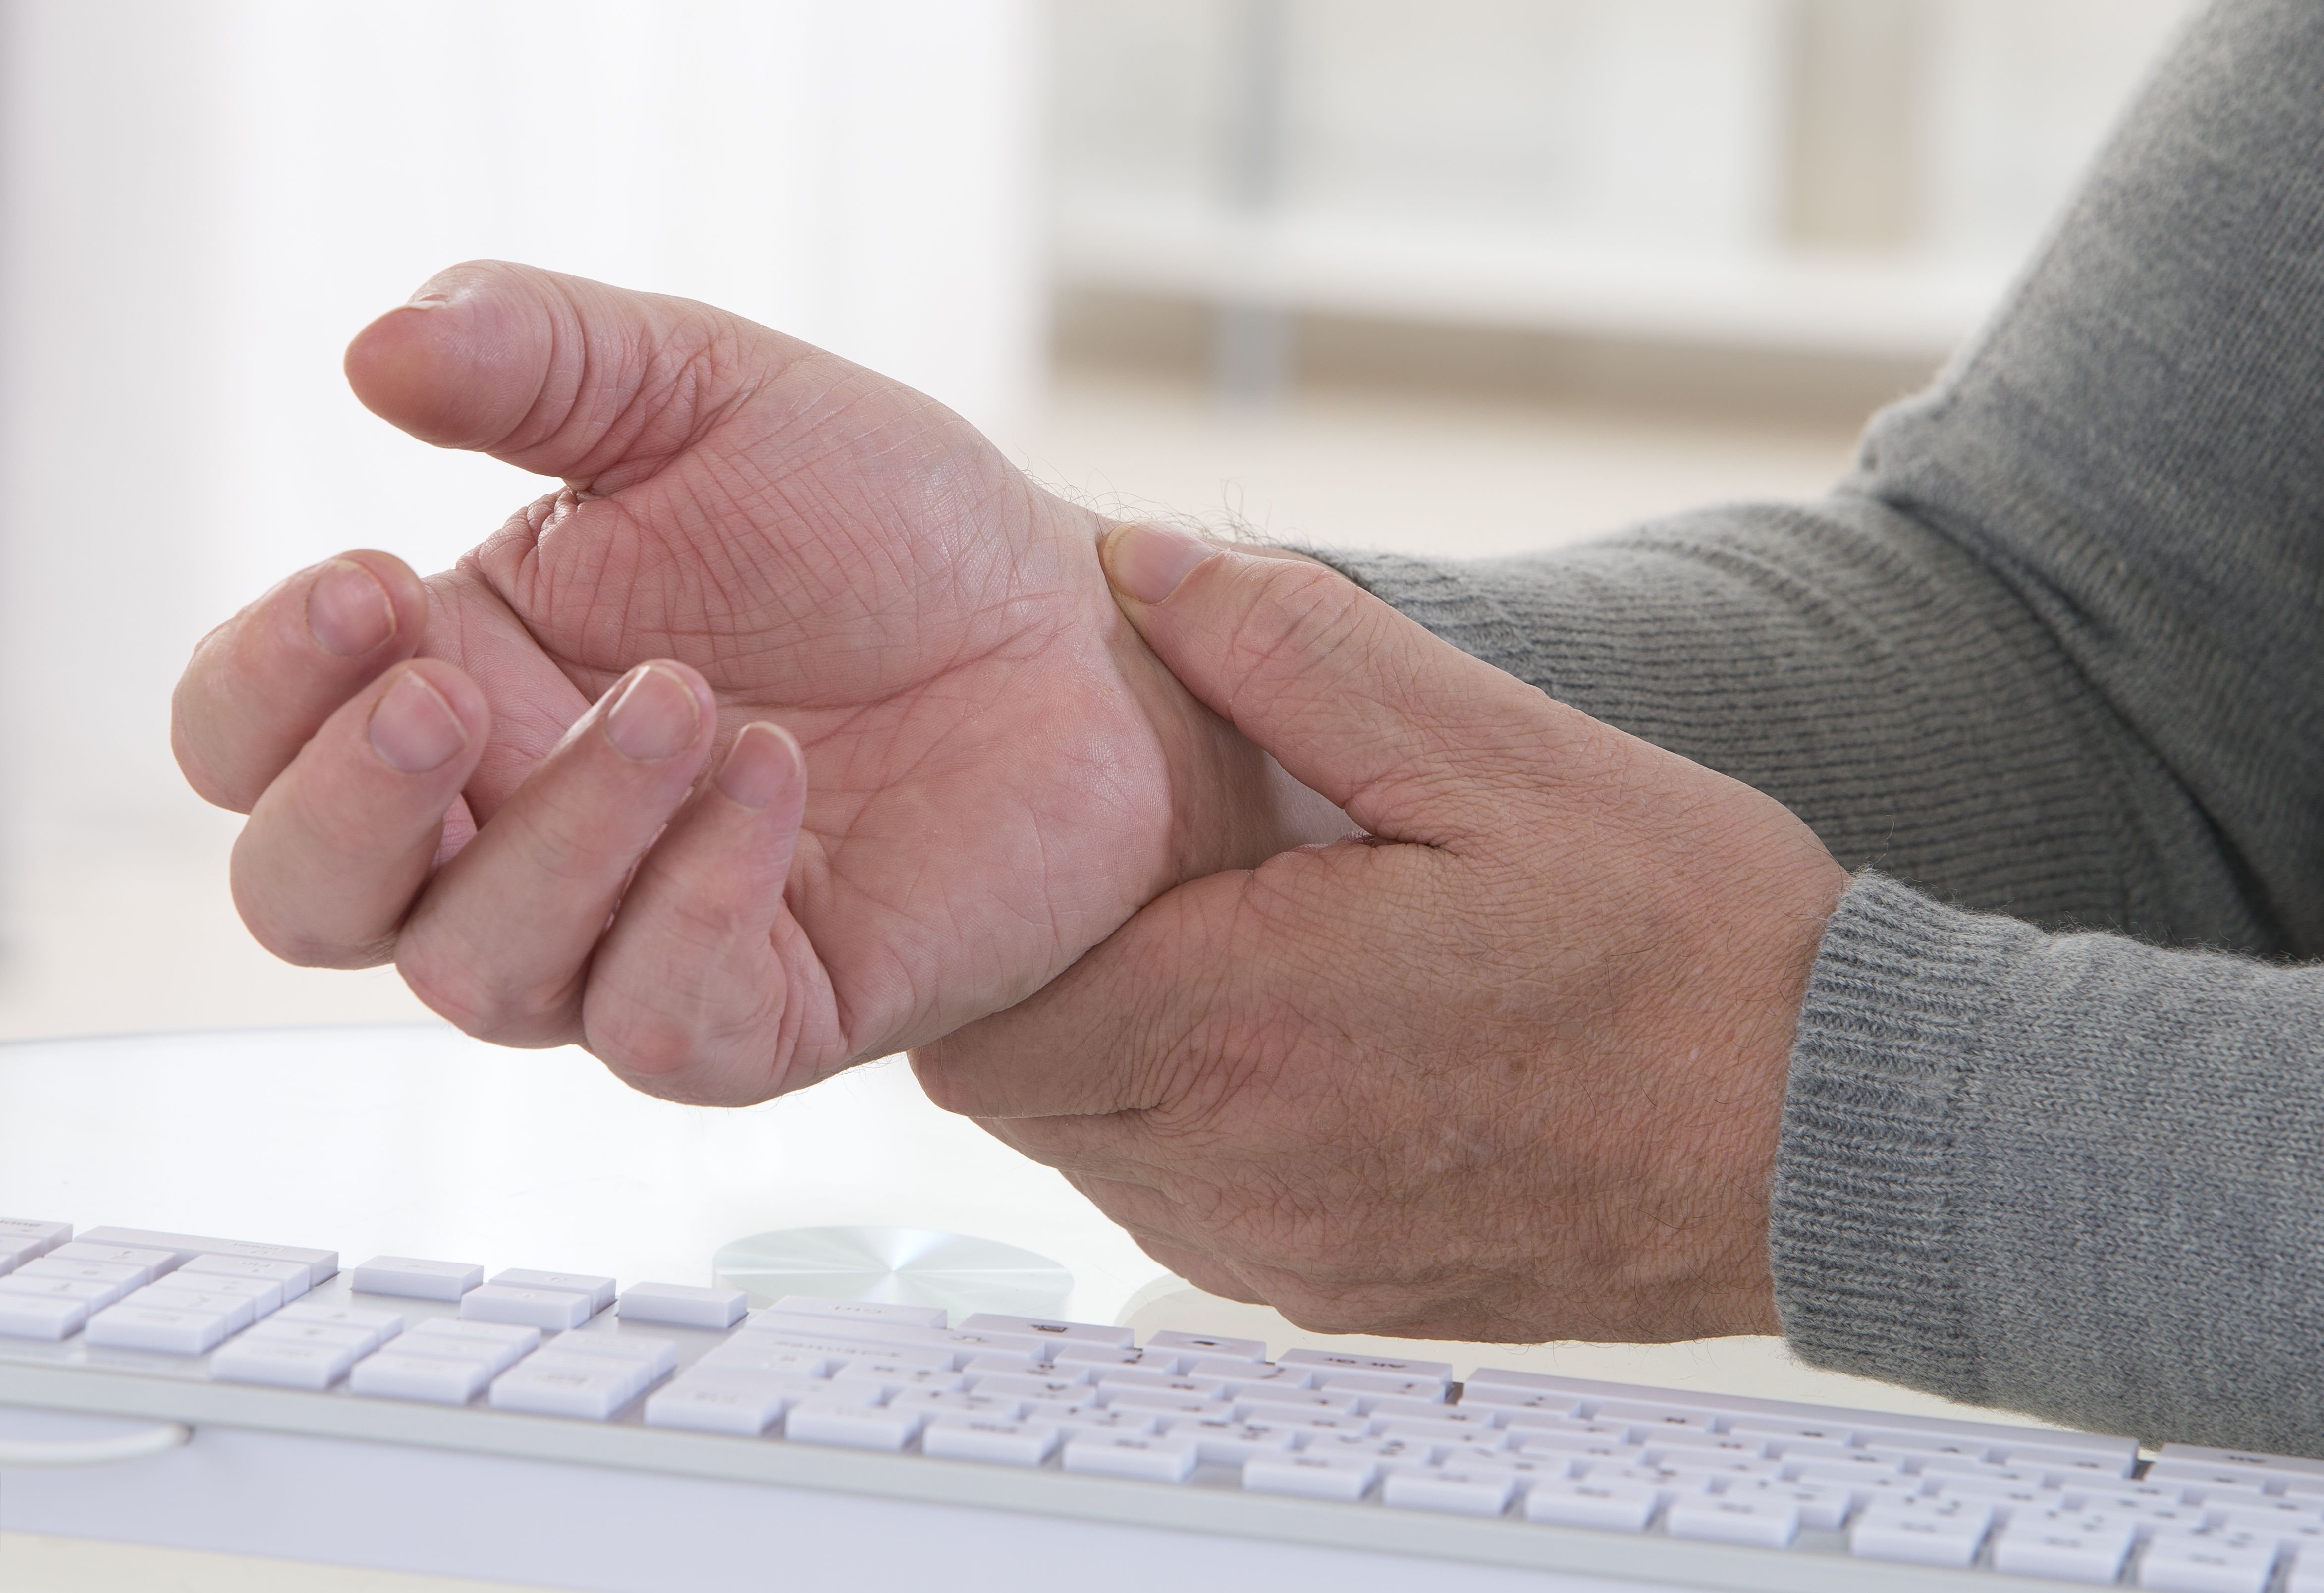 Carpal Tunnel Syndrome Overview